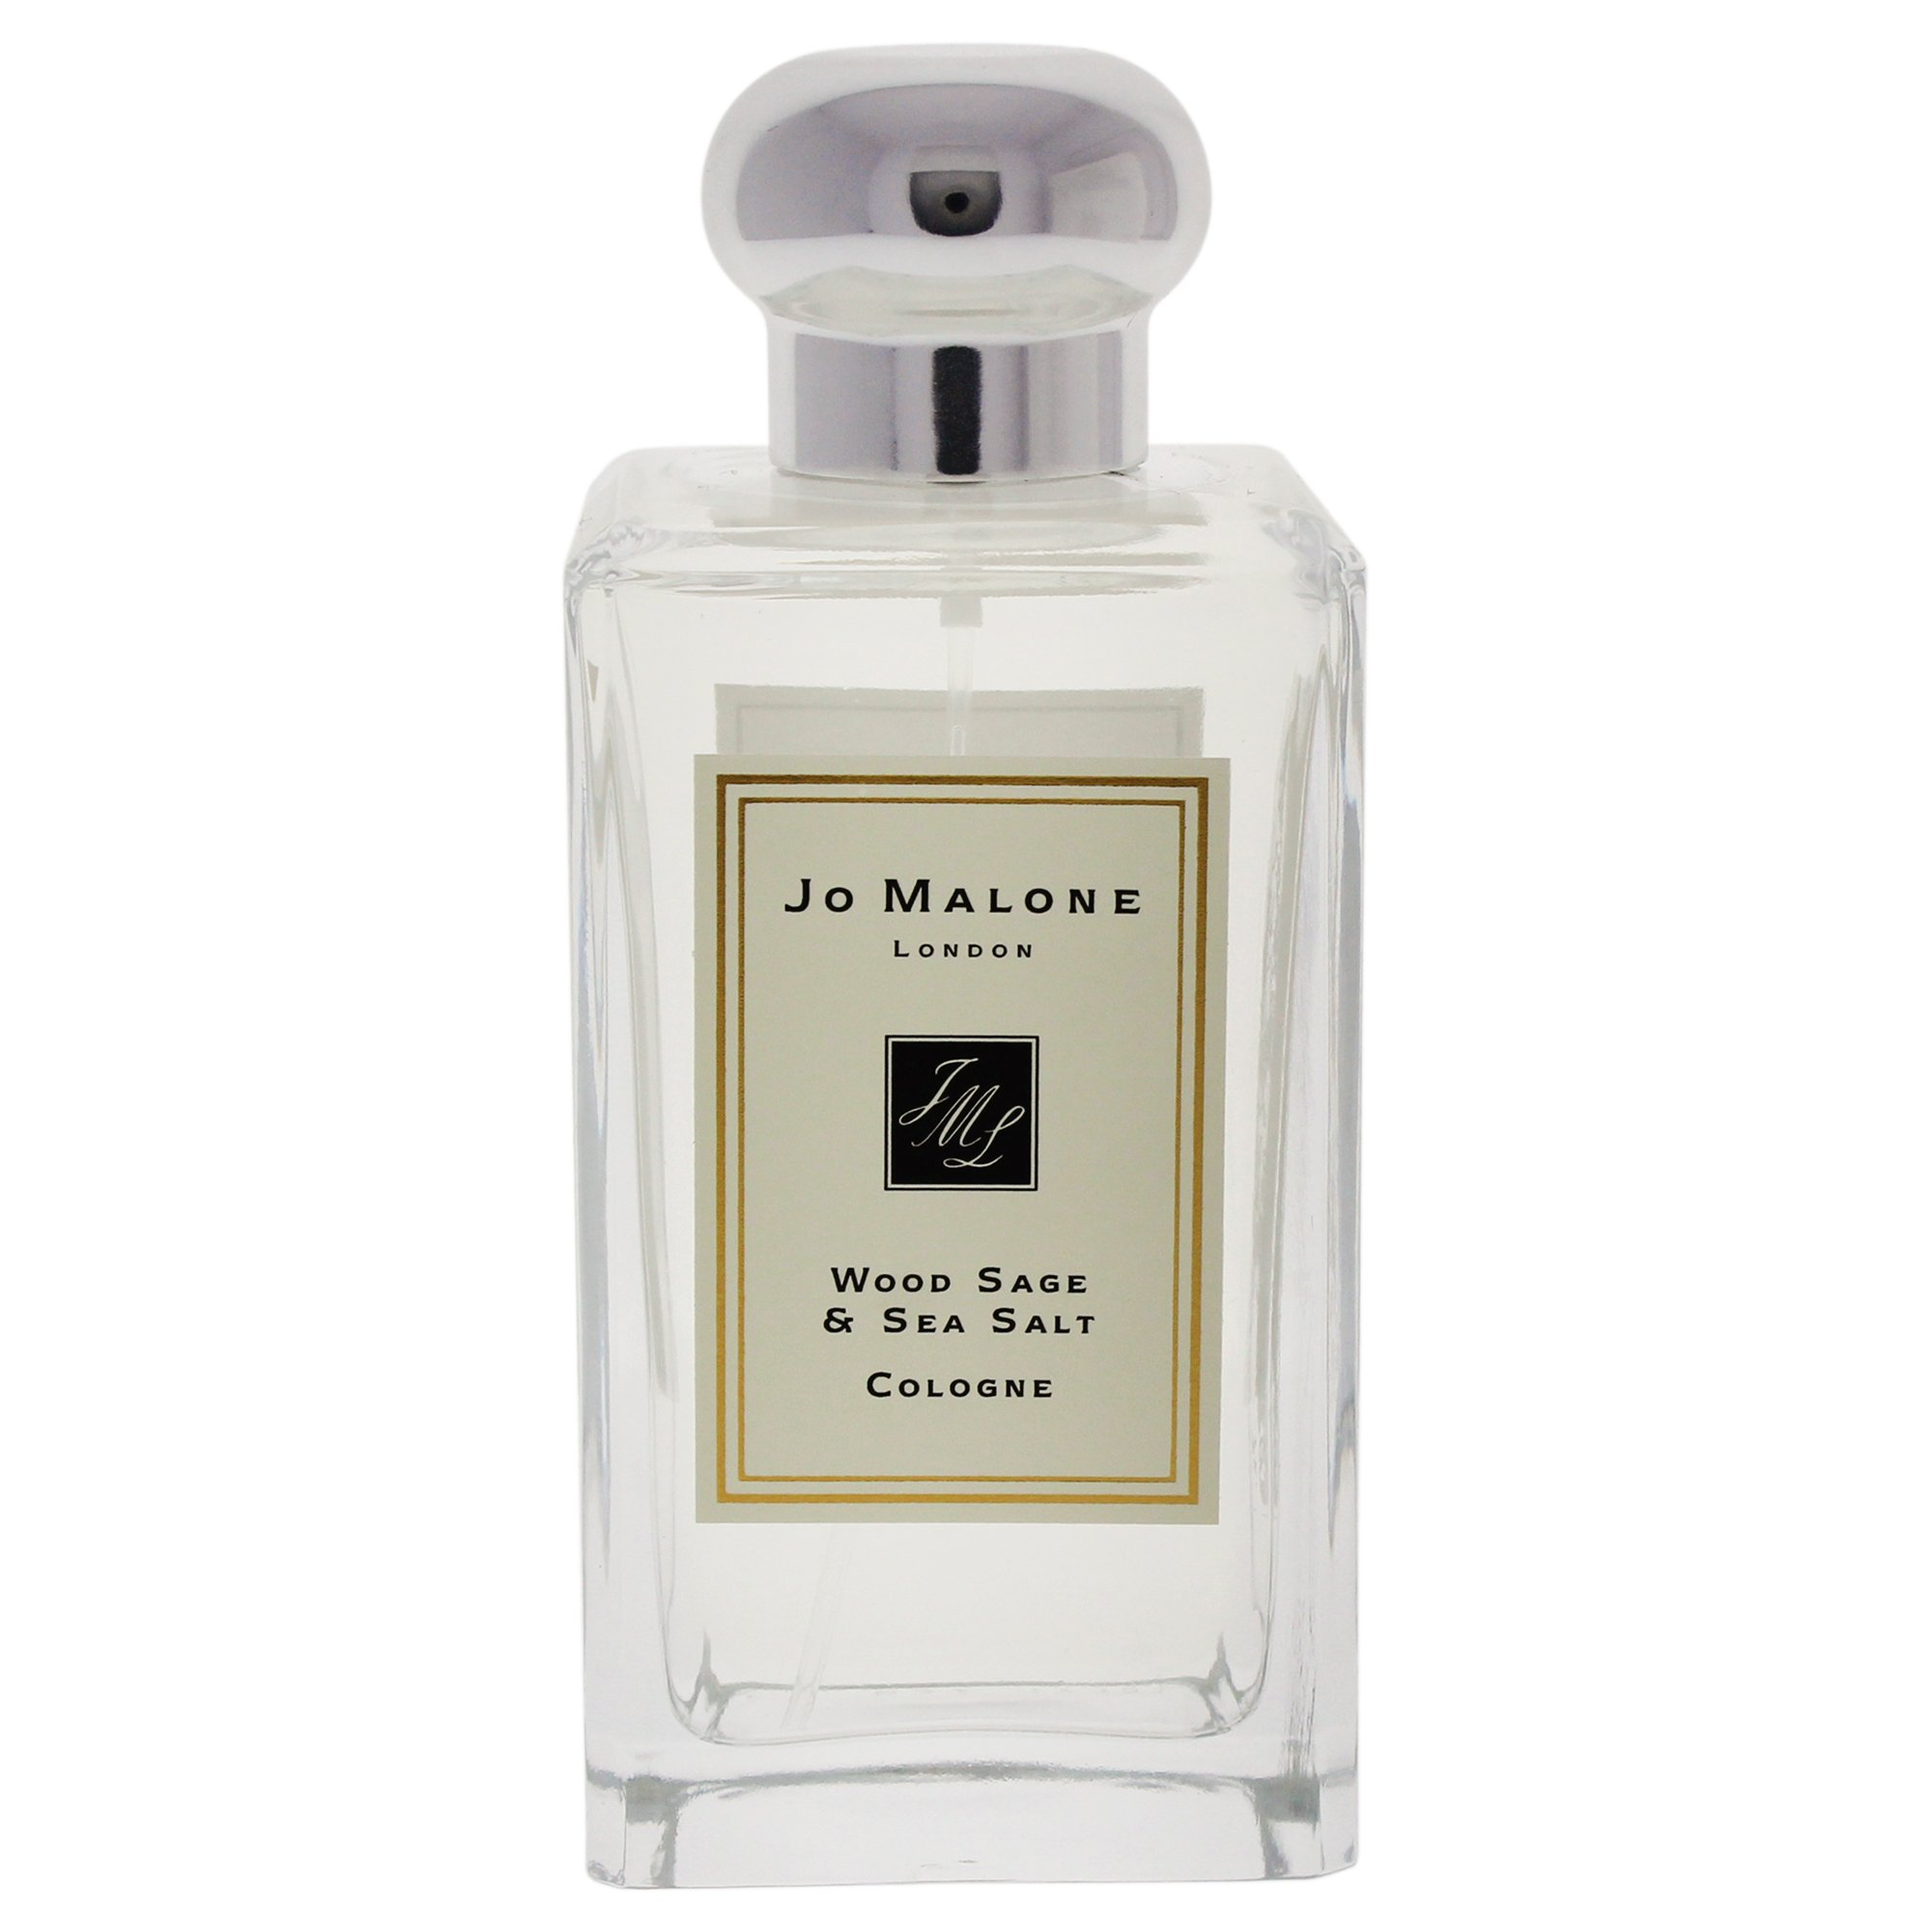 Jo Malone Wood Sage & Sea Salt Cologne Spray for Women, 3.4 Ounce